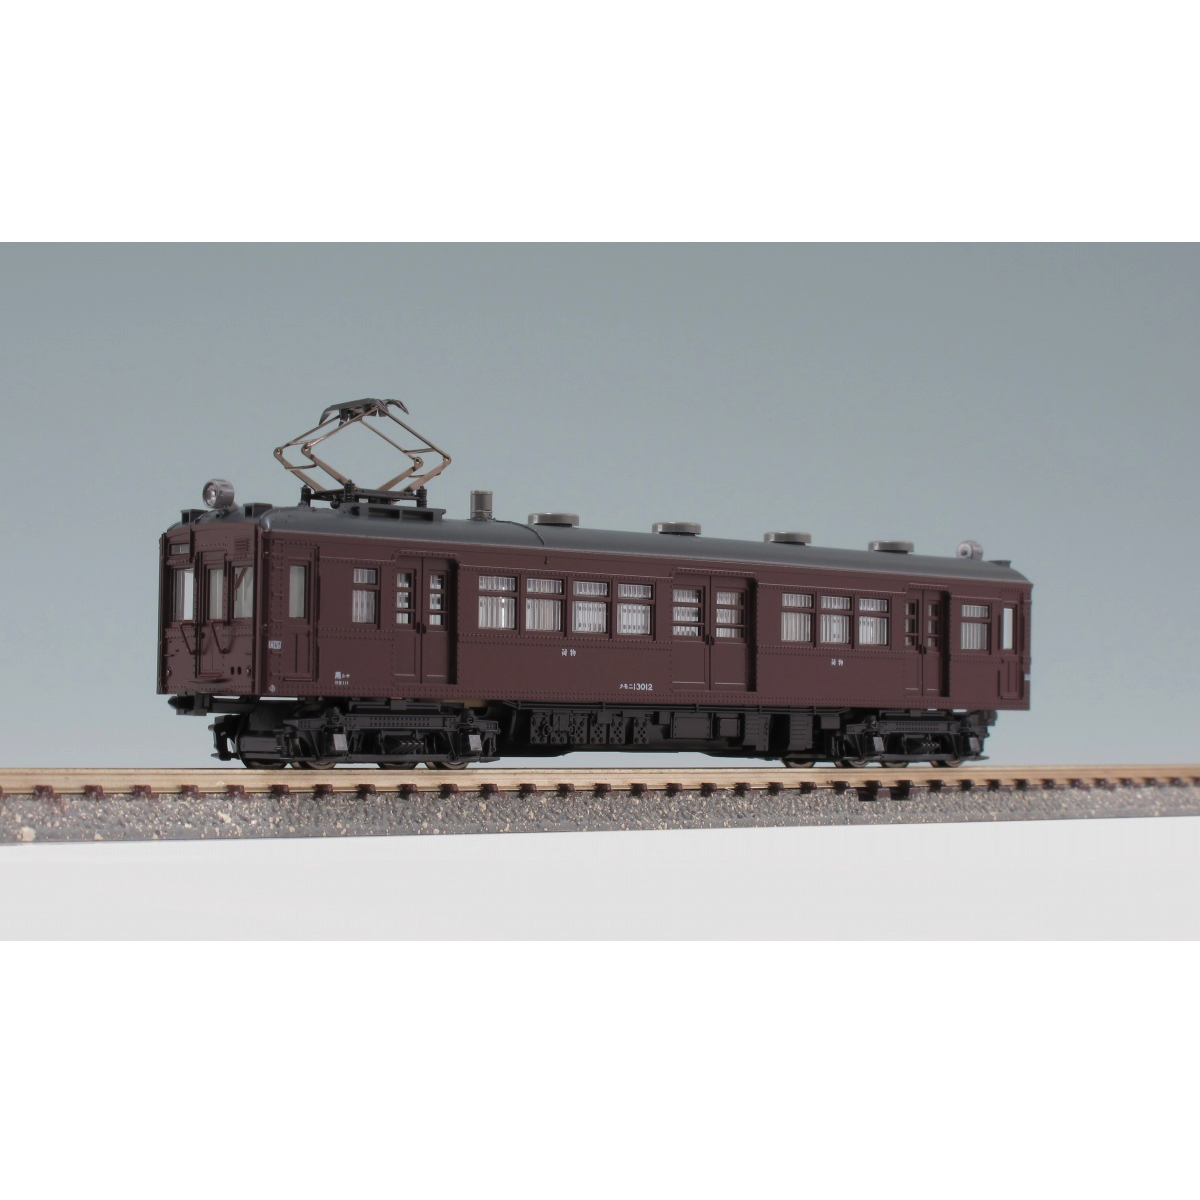 Kato 4969 Electric Car Type KUMOHA13-marrone - N